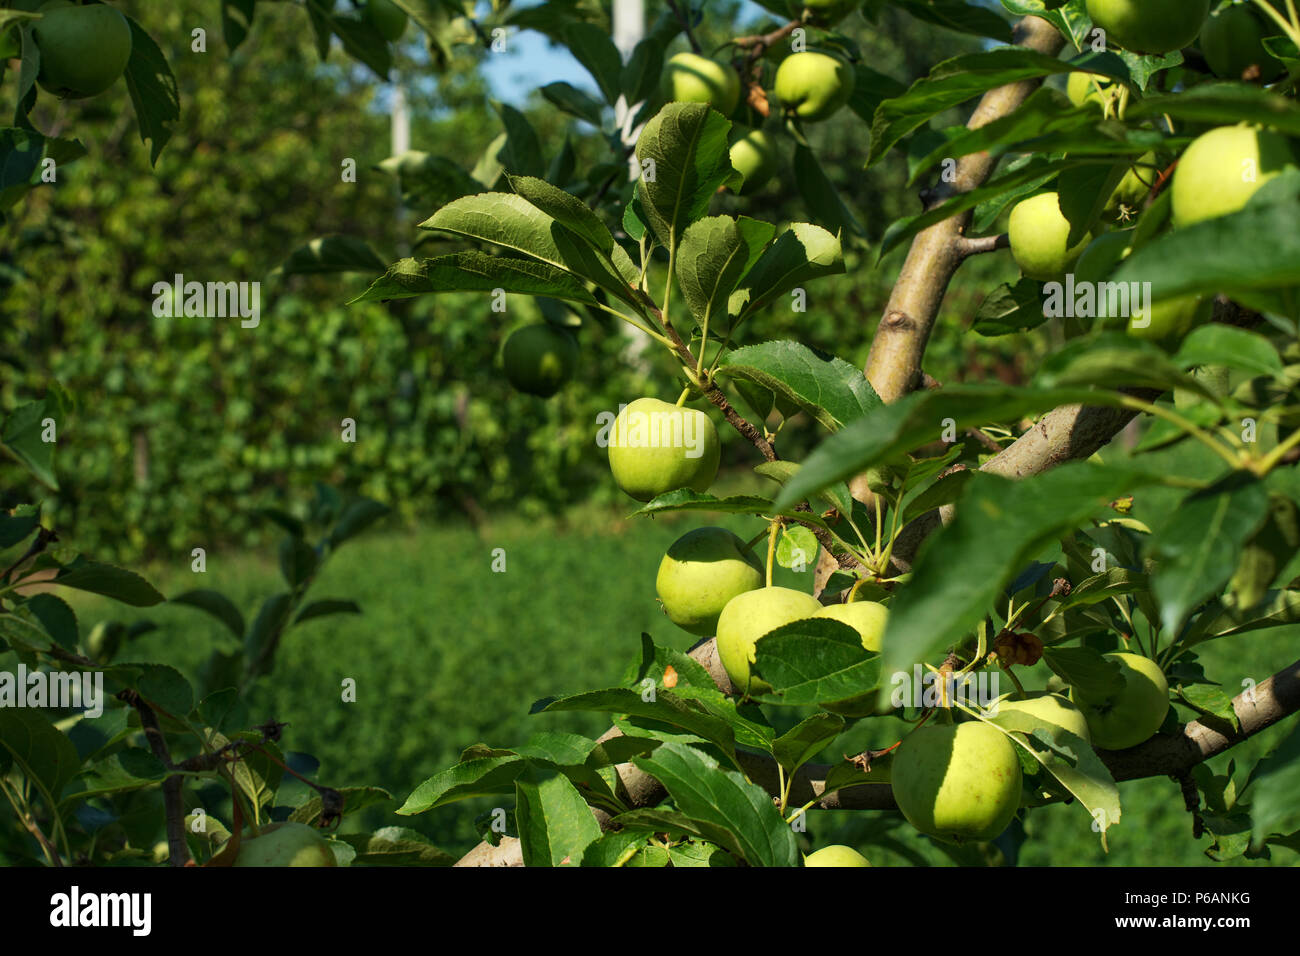 Branches of a tree of the Granny Smith apple cultivar, full of ripening fruits. It is a quite a young tree on an early summer day. - Stock Image